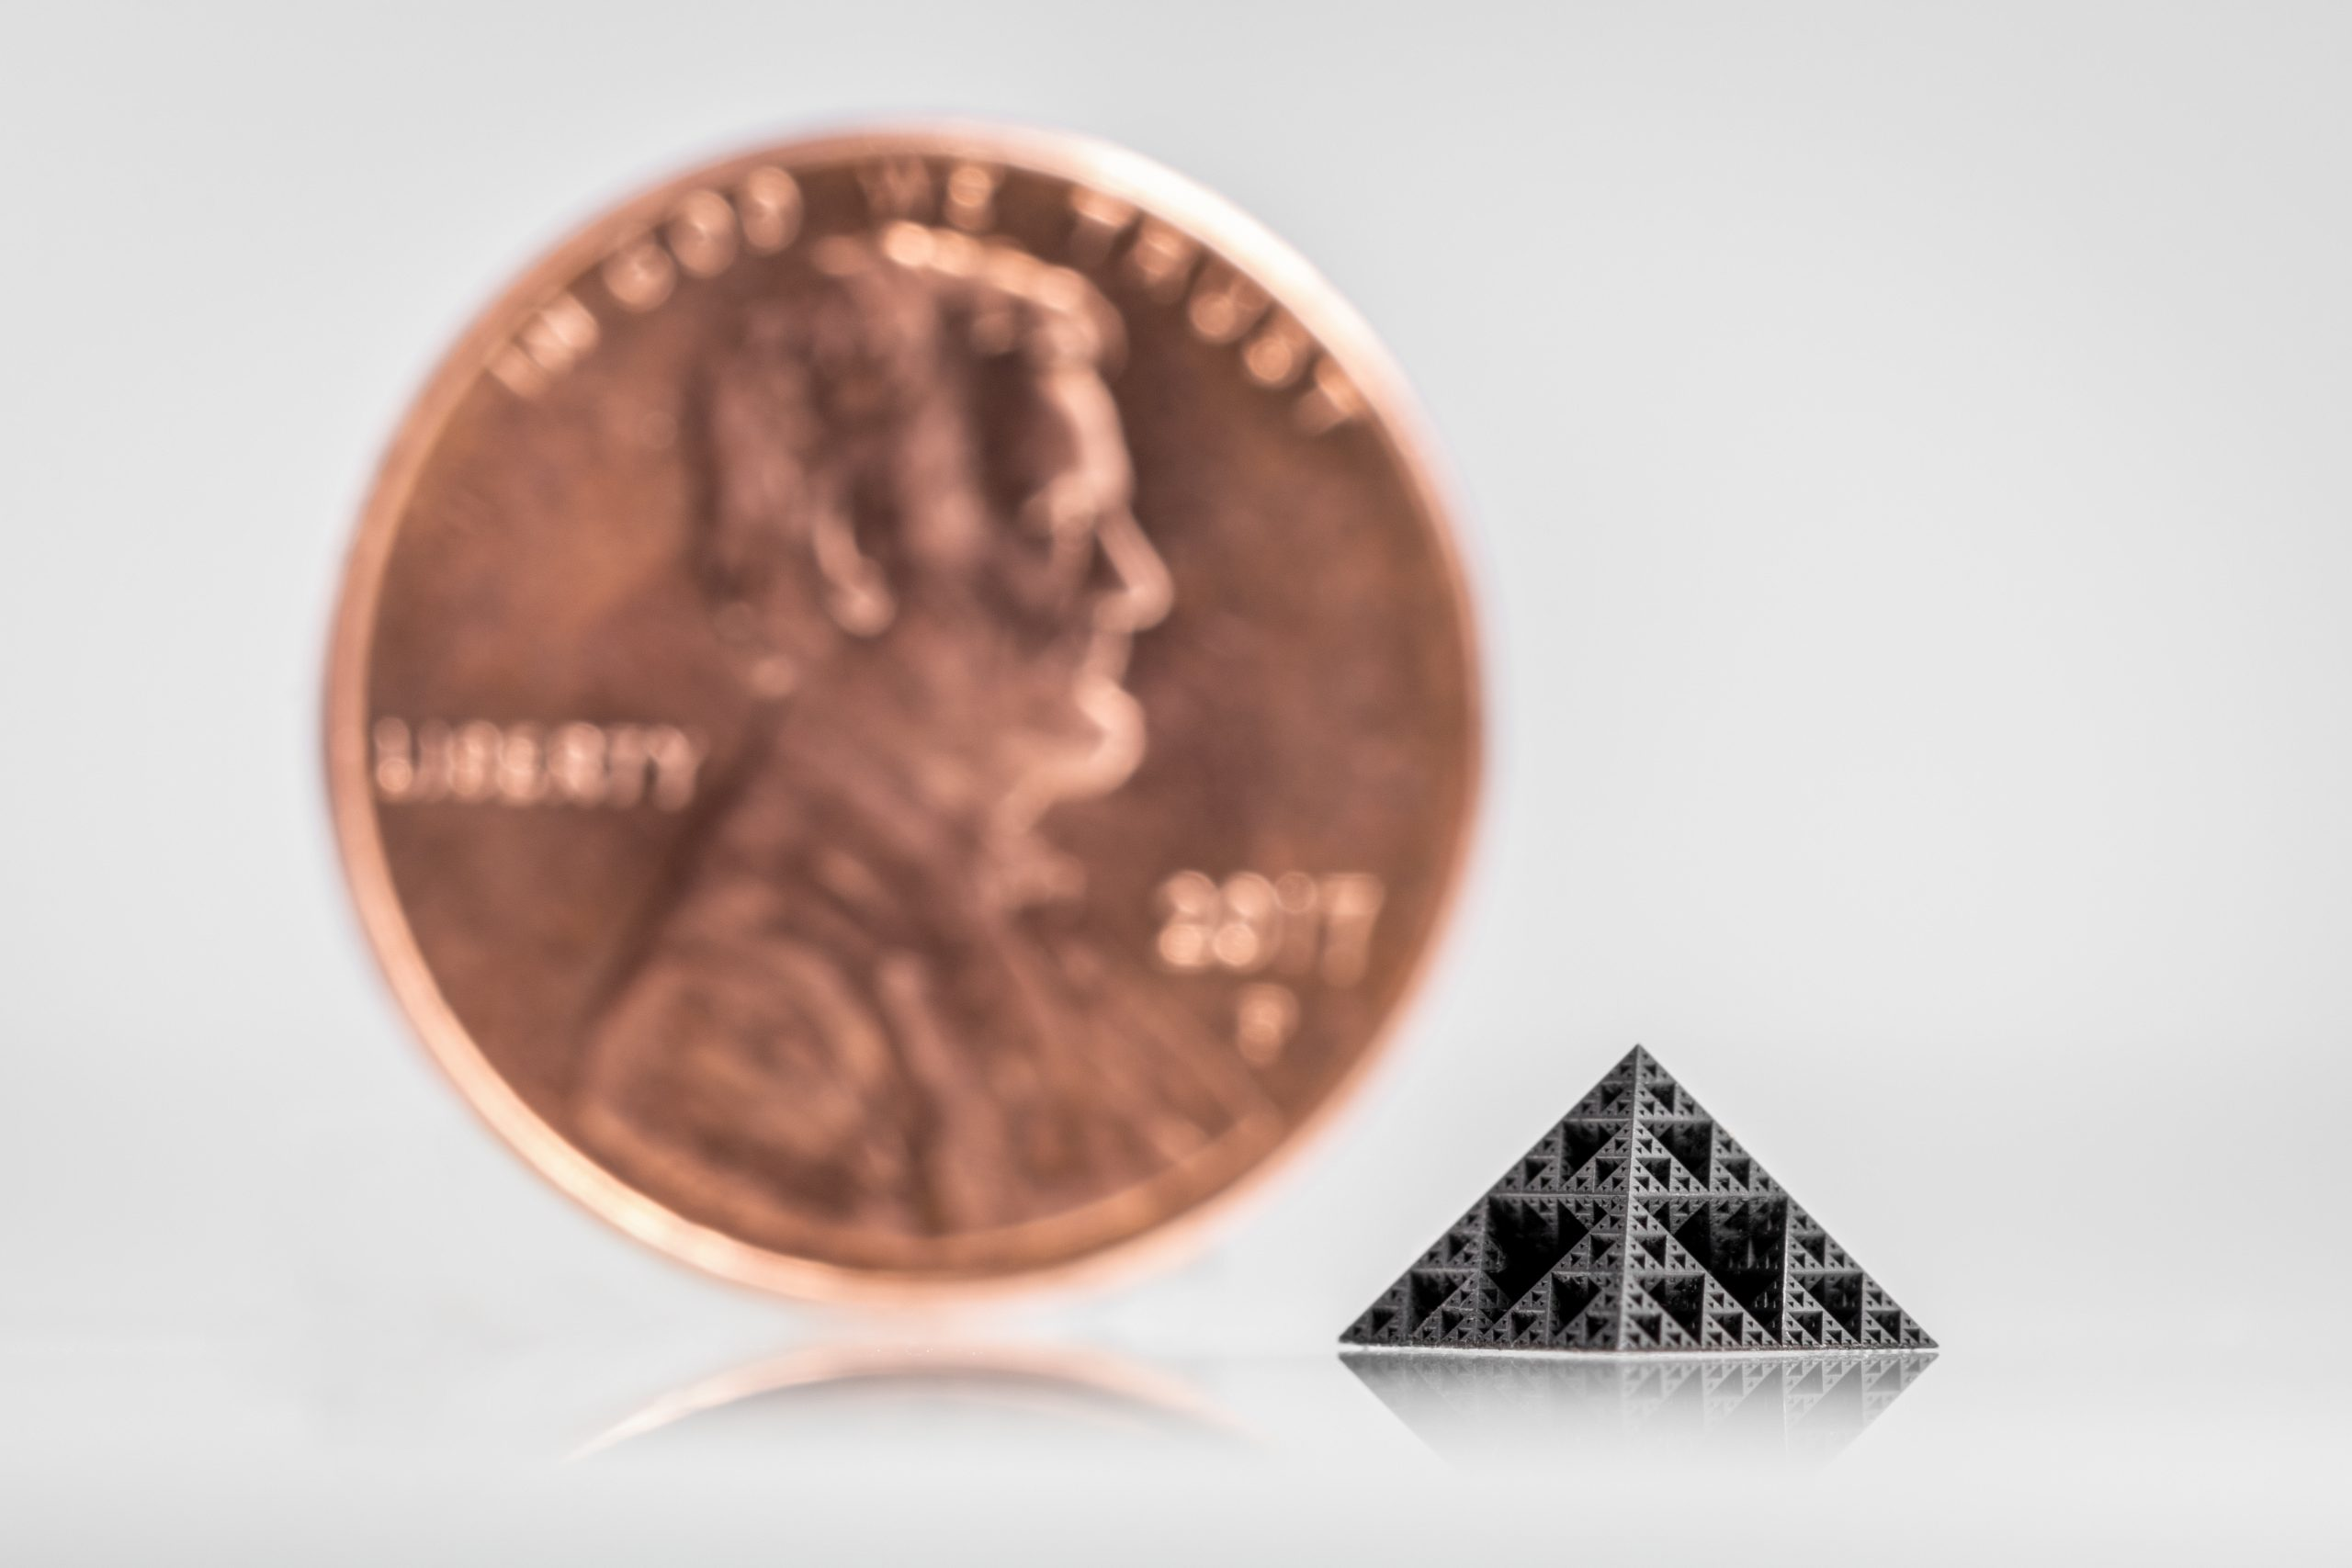 Nanofabrica has combined speed and precision in its microscale 3D printing technology. Photo via Nanofabrica.